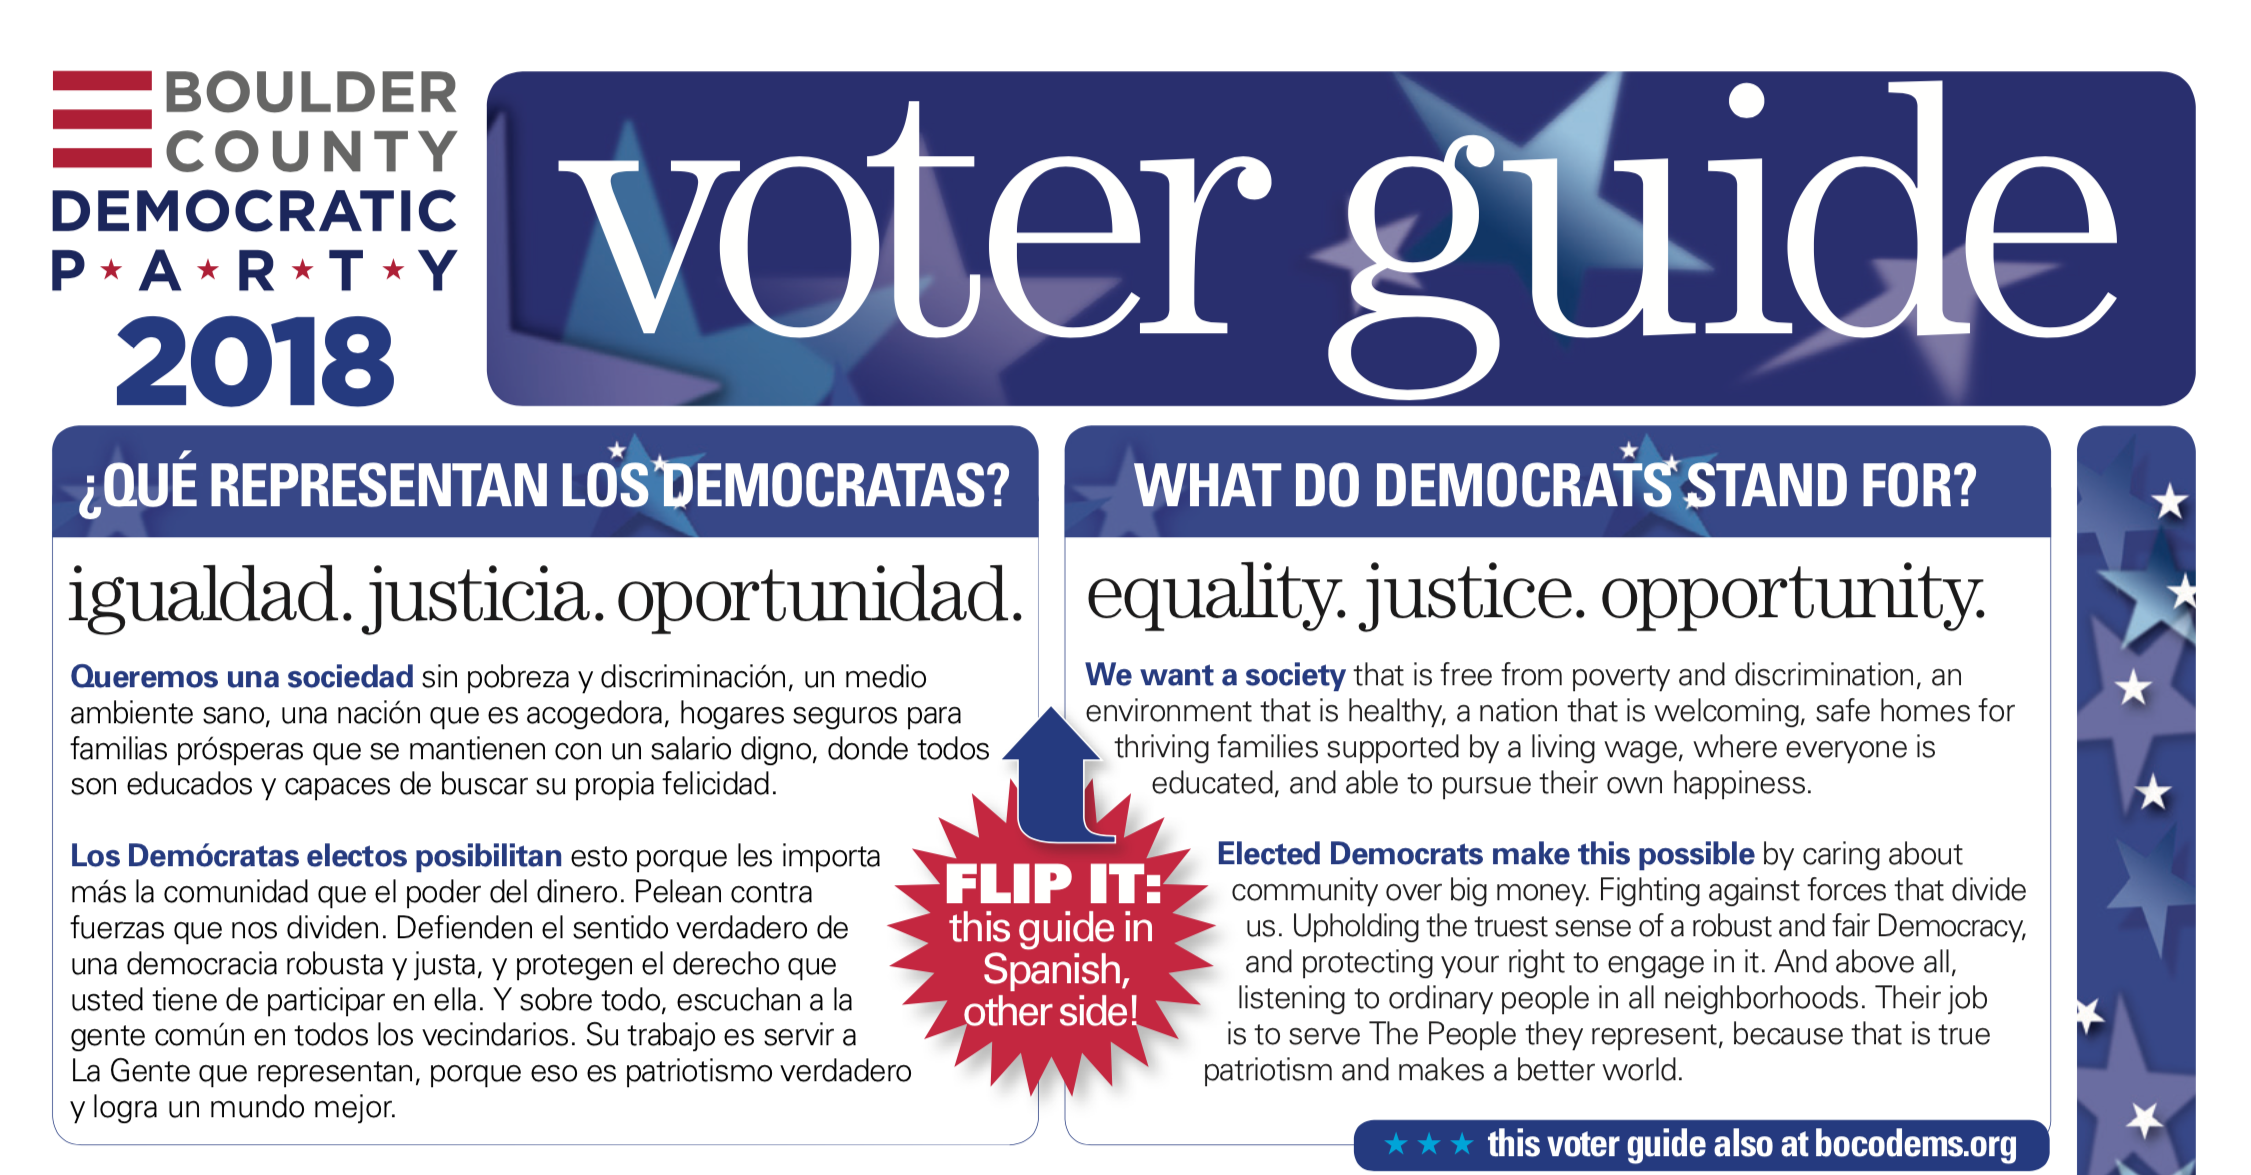 BCDP Voter Guide